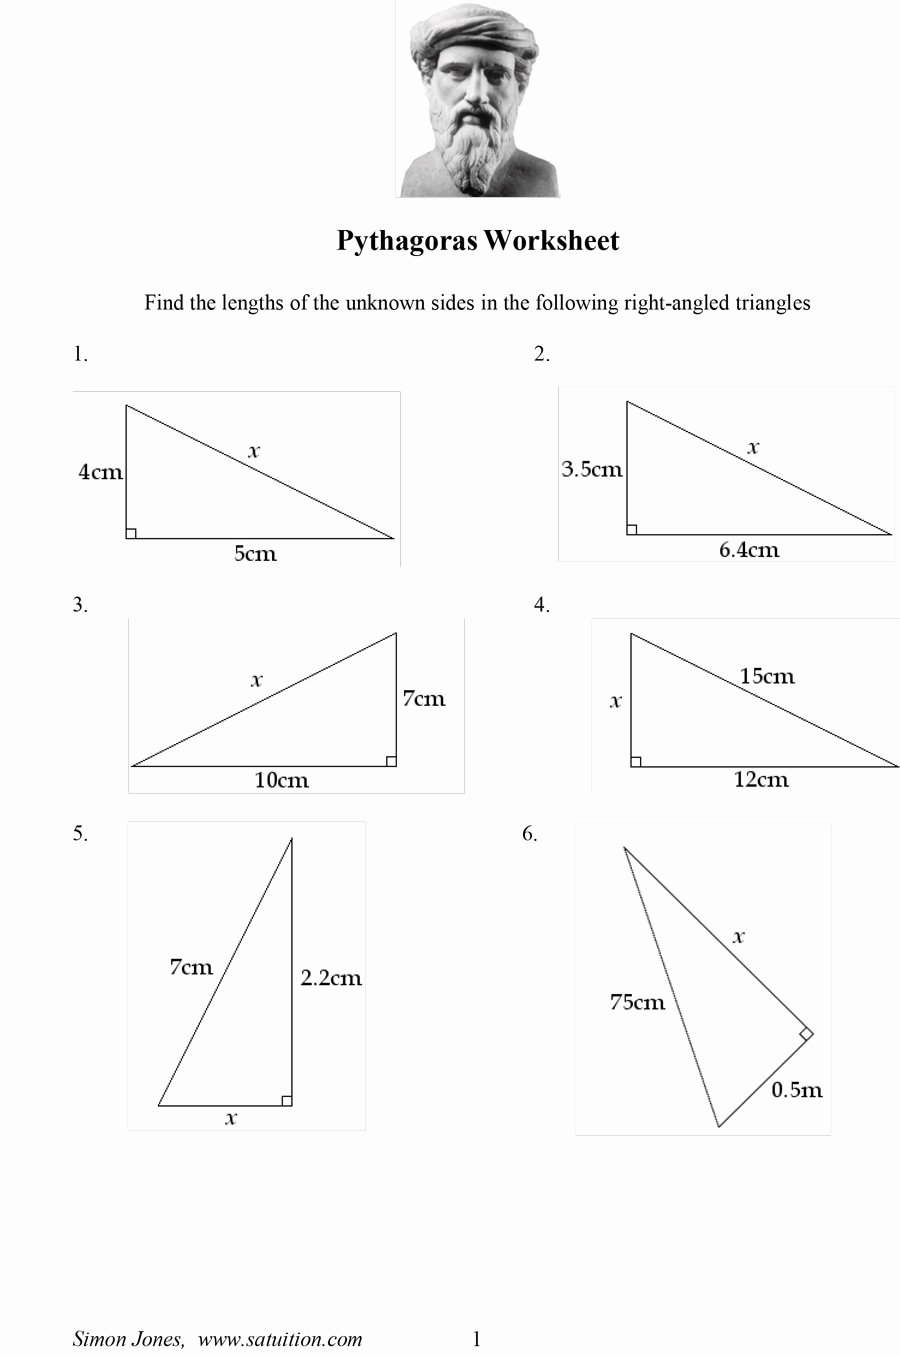 Pythagorean theorem Practice Worksheet Lovely 48 Pythagorean theorem Worksheet with Answers [word Pdf]